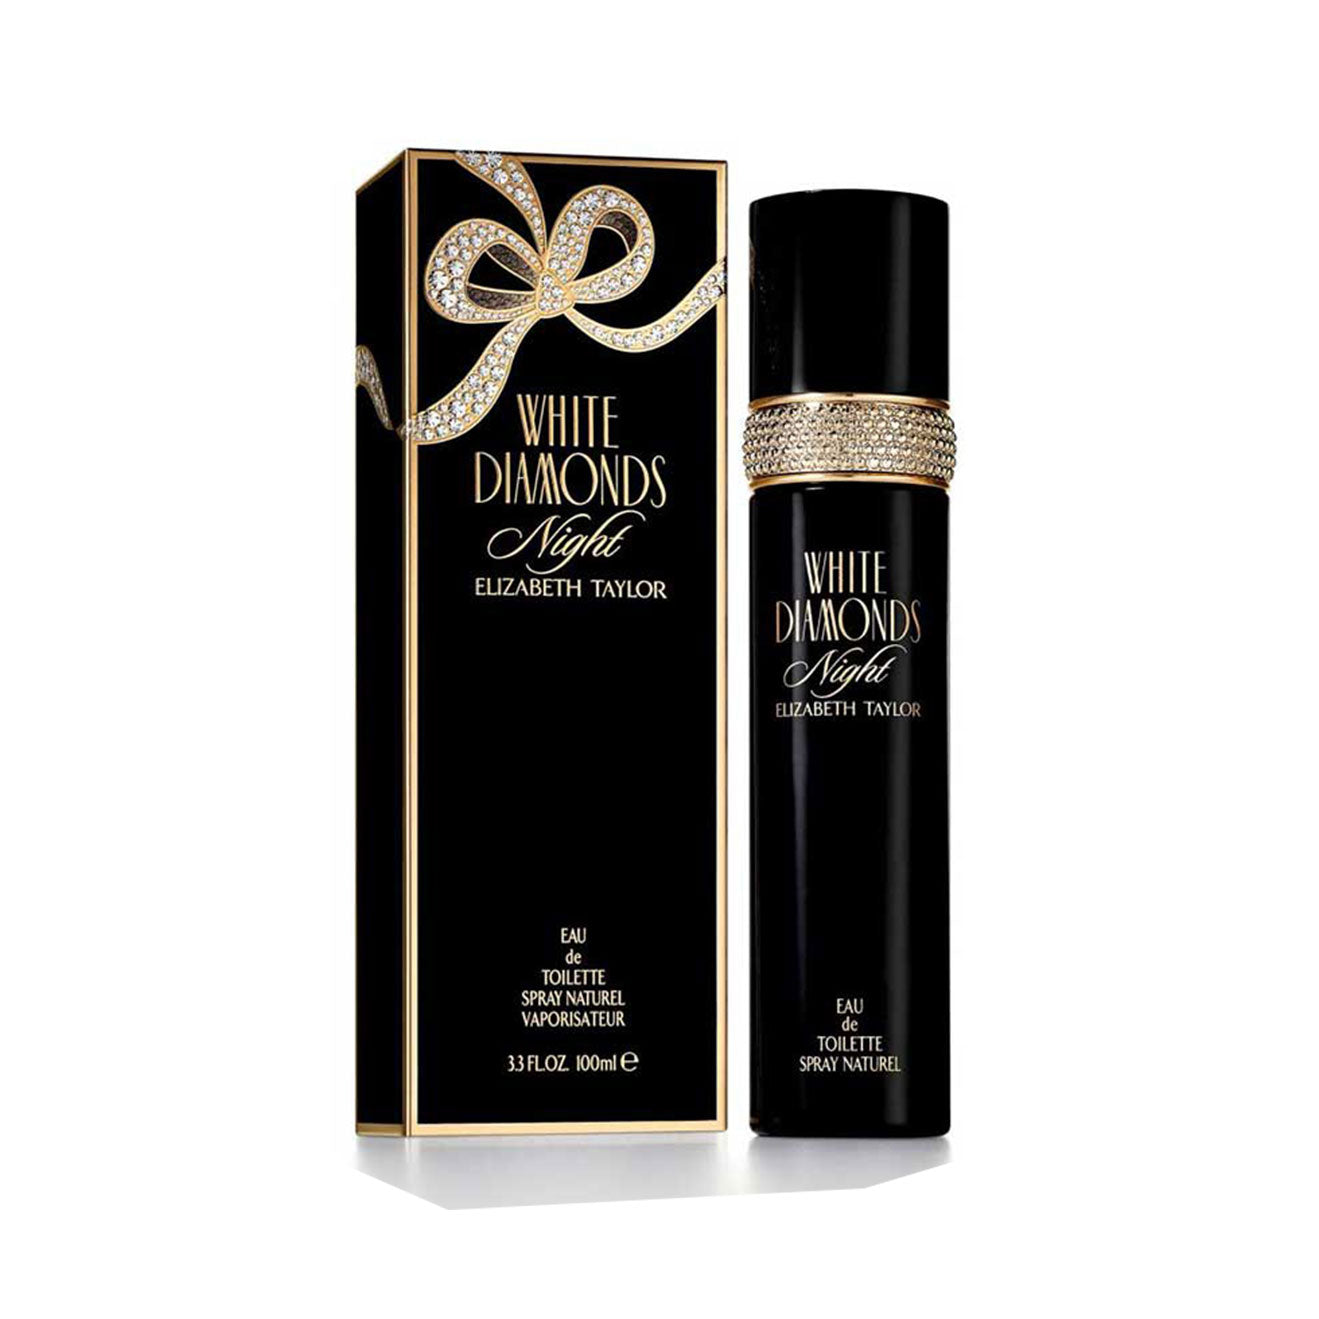 White Diamonds Night EDT Spray 100ml